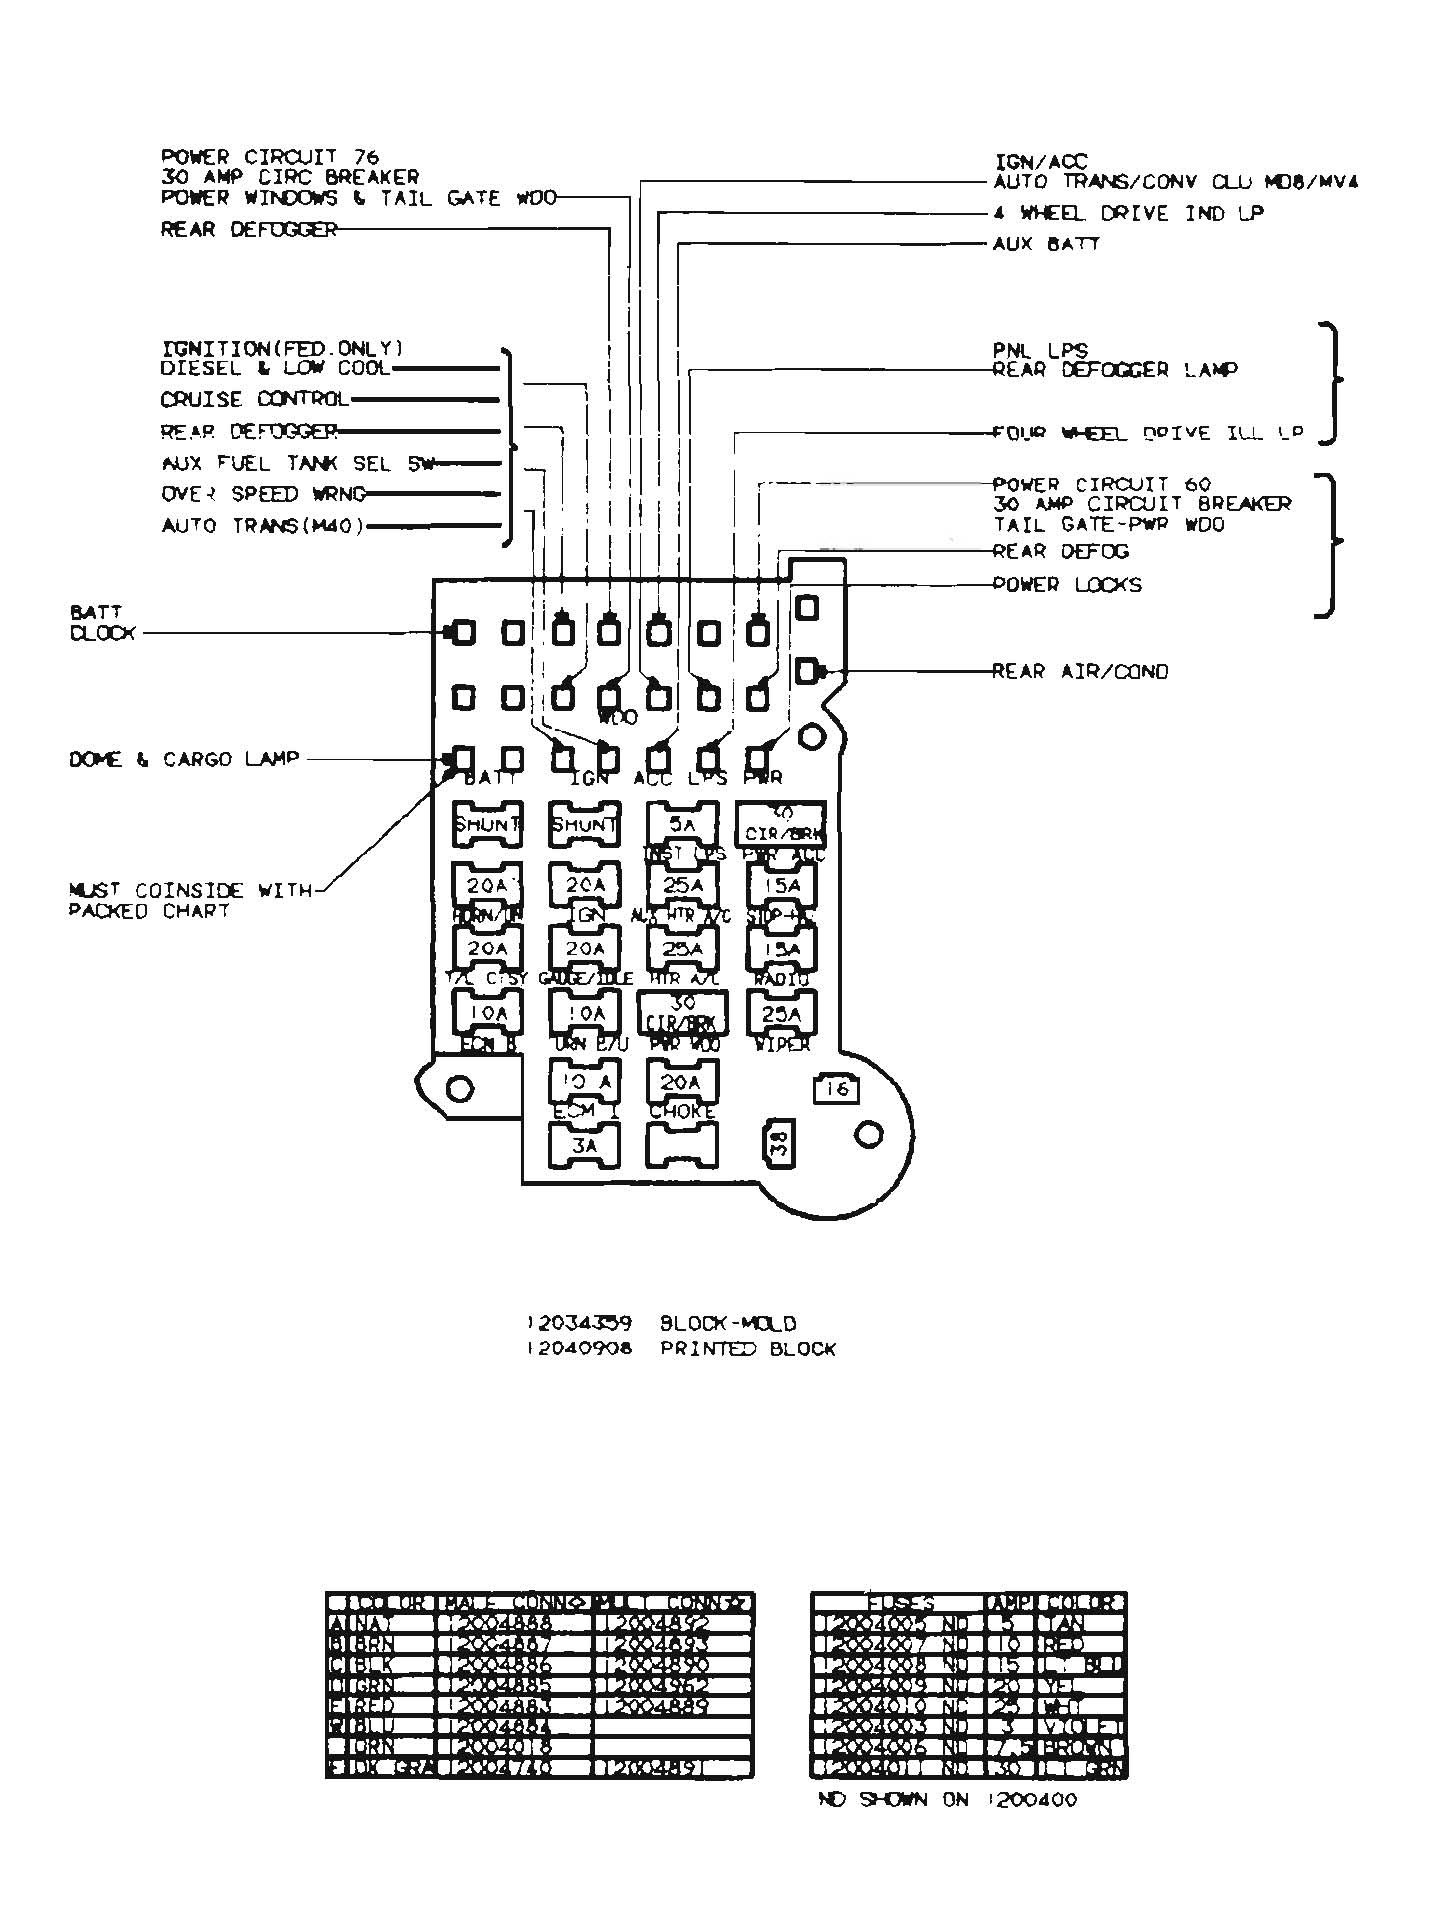 hight resolution of 1987 chevy truck fuse box diagram wiring diagram query 86 chevy c10 fuse box diagram 1986 chevy truck fuse block diagram